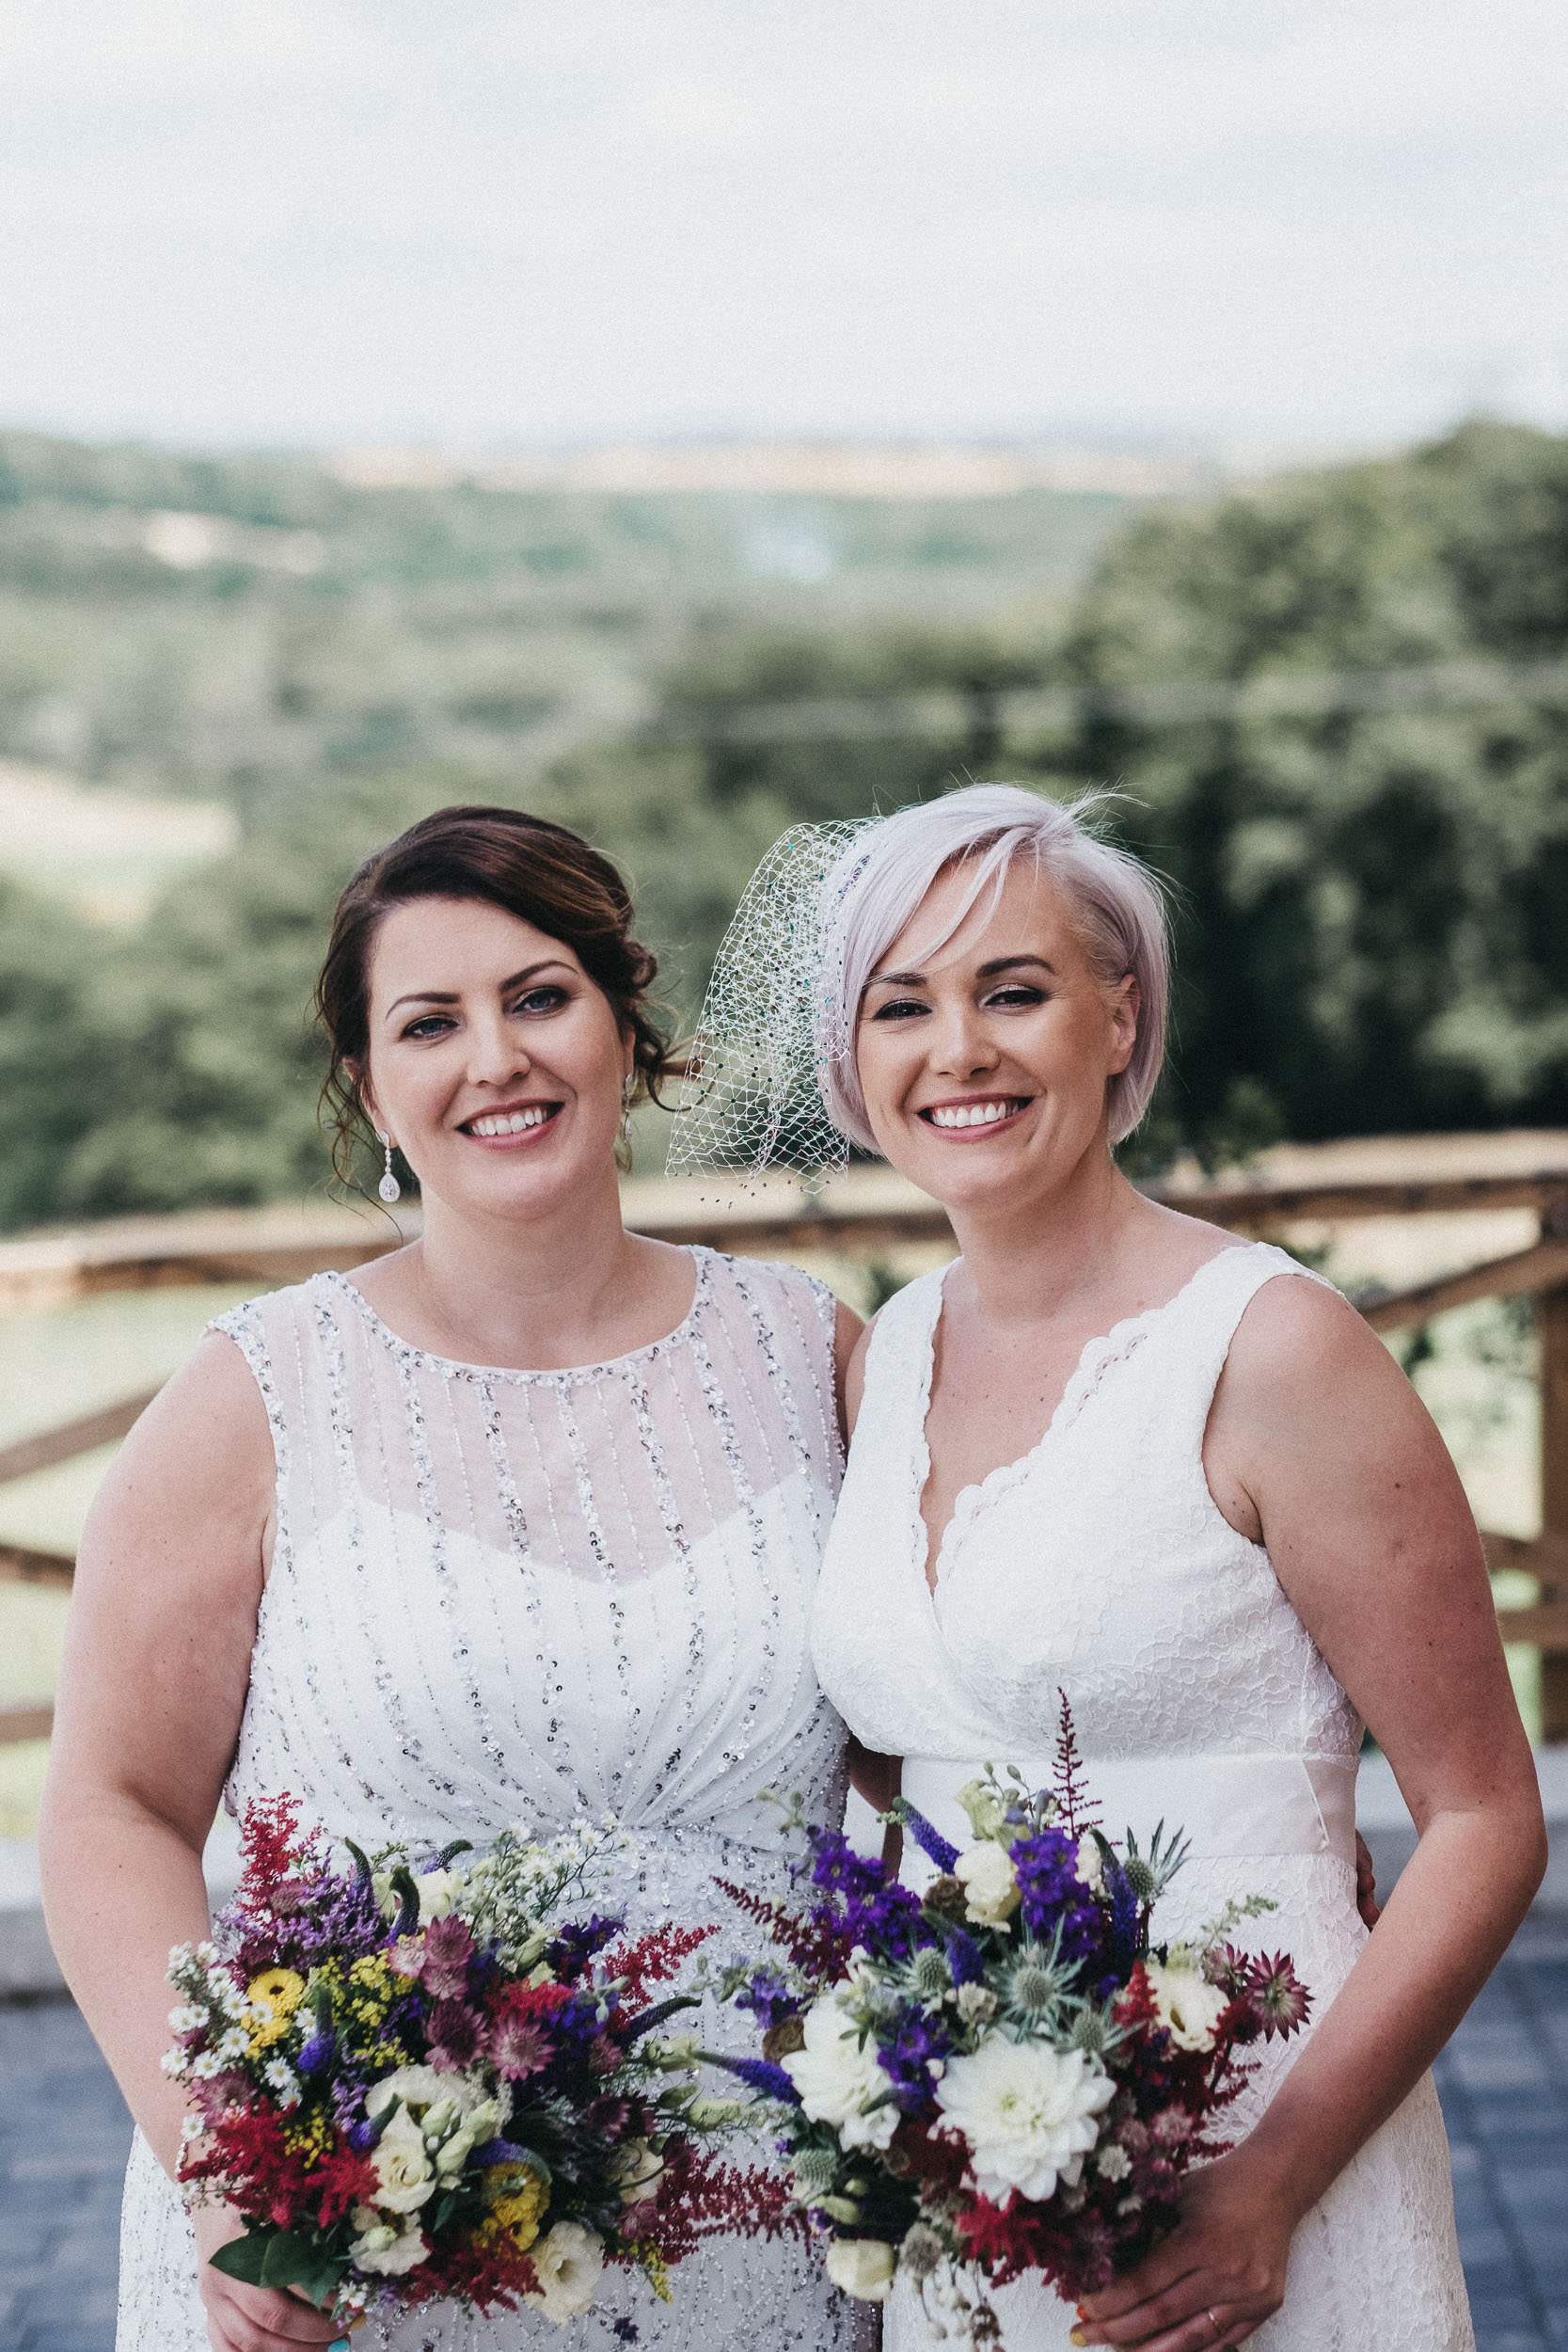 Two brides smiling while holding bouquets at same sex wedding